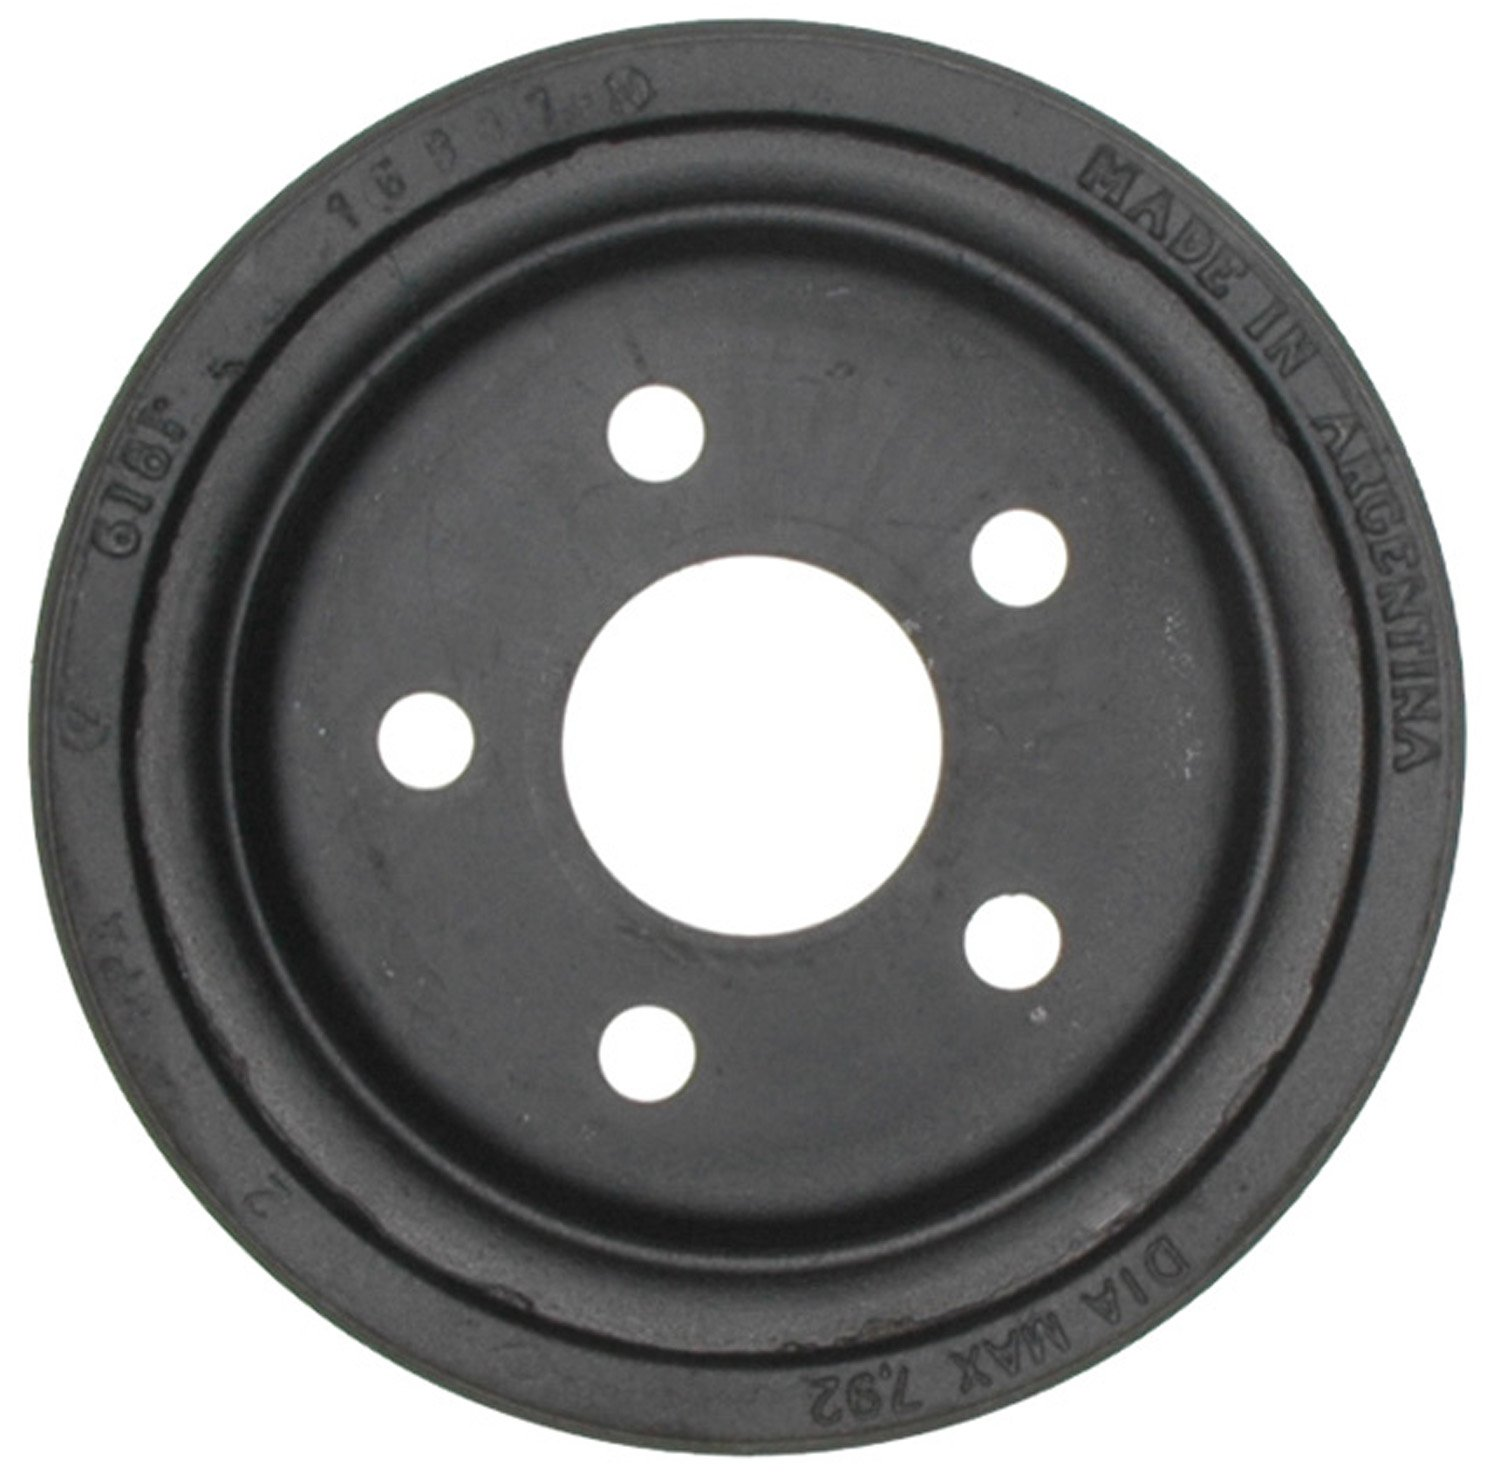 ACDelco 18B99 Professional Rear Brake Drum Assembly